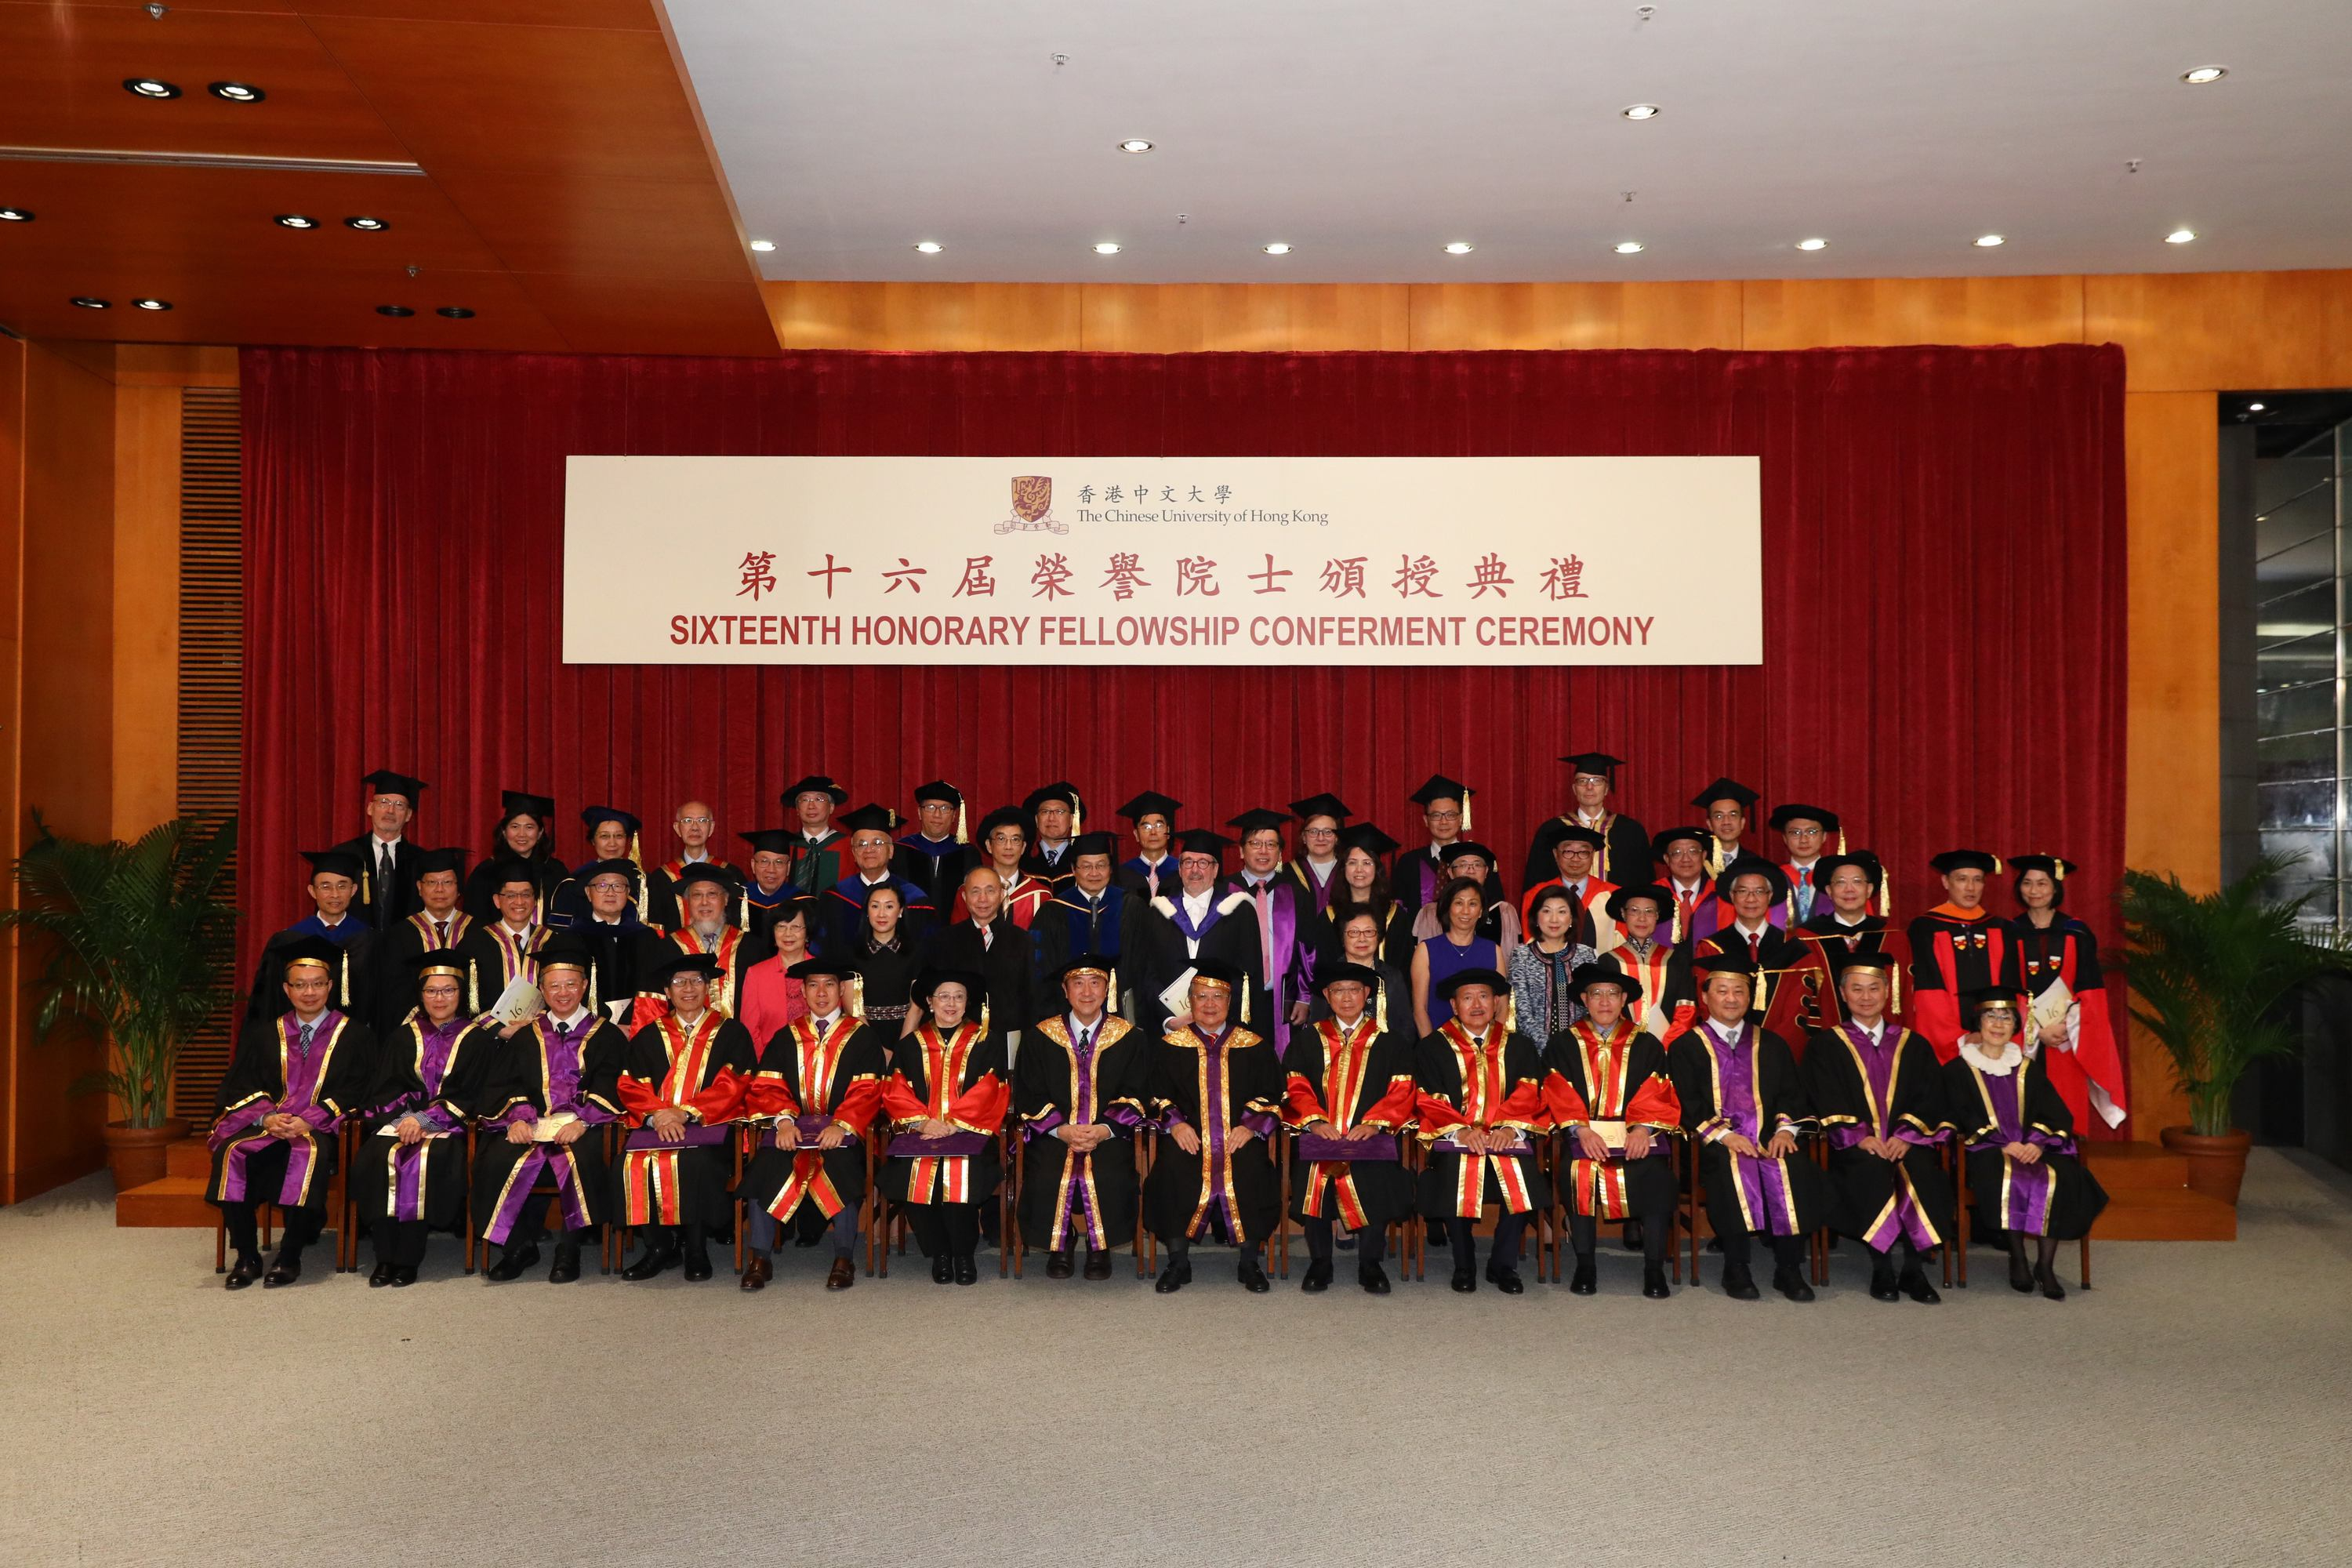 Group photos of the six honorary fellows, Council Chairman Dr. Norman Leung (7th right, front row), Vice-Chancellor Prof. Joseph Sung (7th left, front row), Provost Prof. Benjamin Wah (3rd right, front row), and Pro-Vice-Chancellors Prof. Fanny Cheung, Prof. Fok Tai-fai (1st-2nd right, front row), Prof. Poon Wai-yin, Prof. Michael Hui (2nd-3rd left, front row) and Vice-President Mr. Eric Ng (1st left, front row).